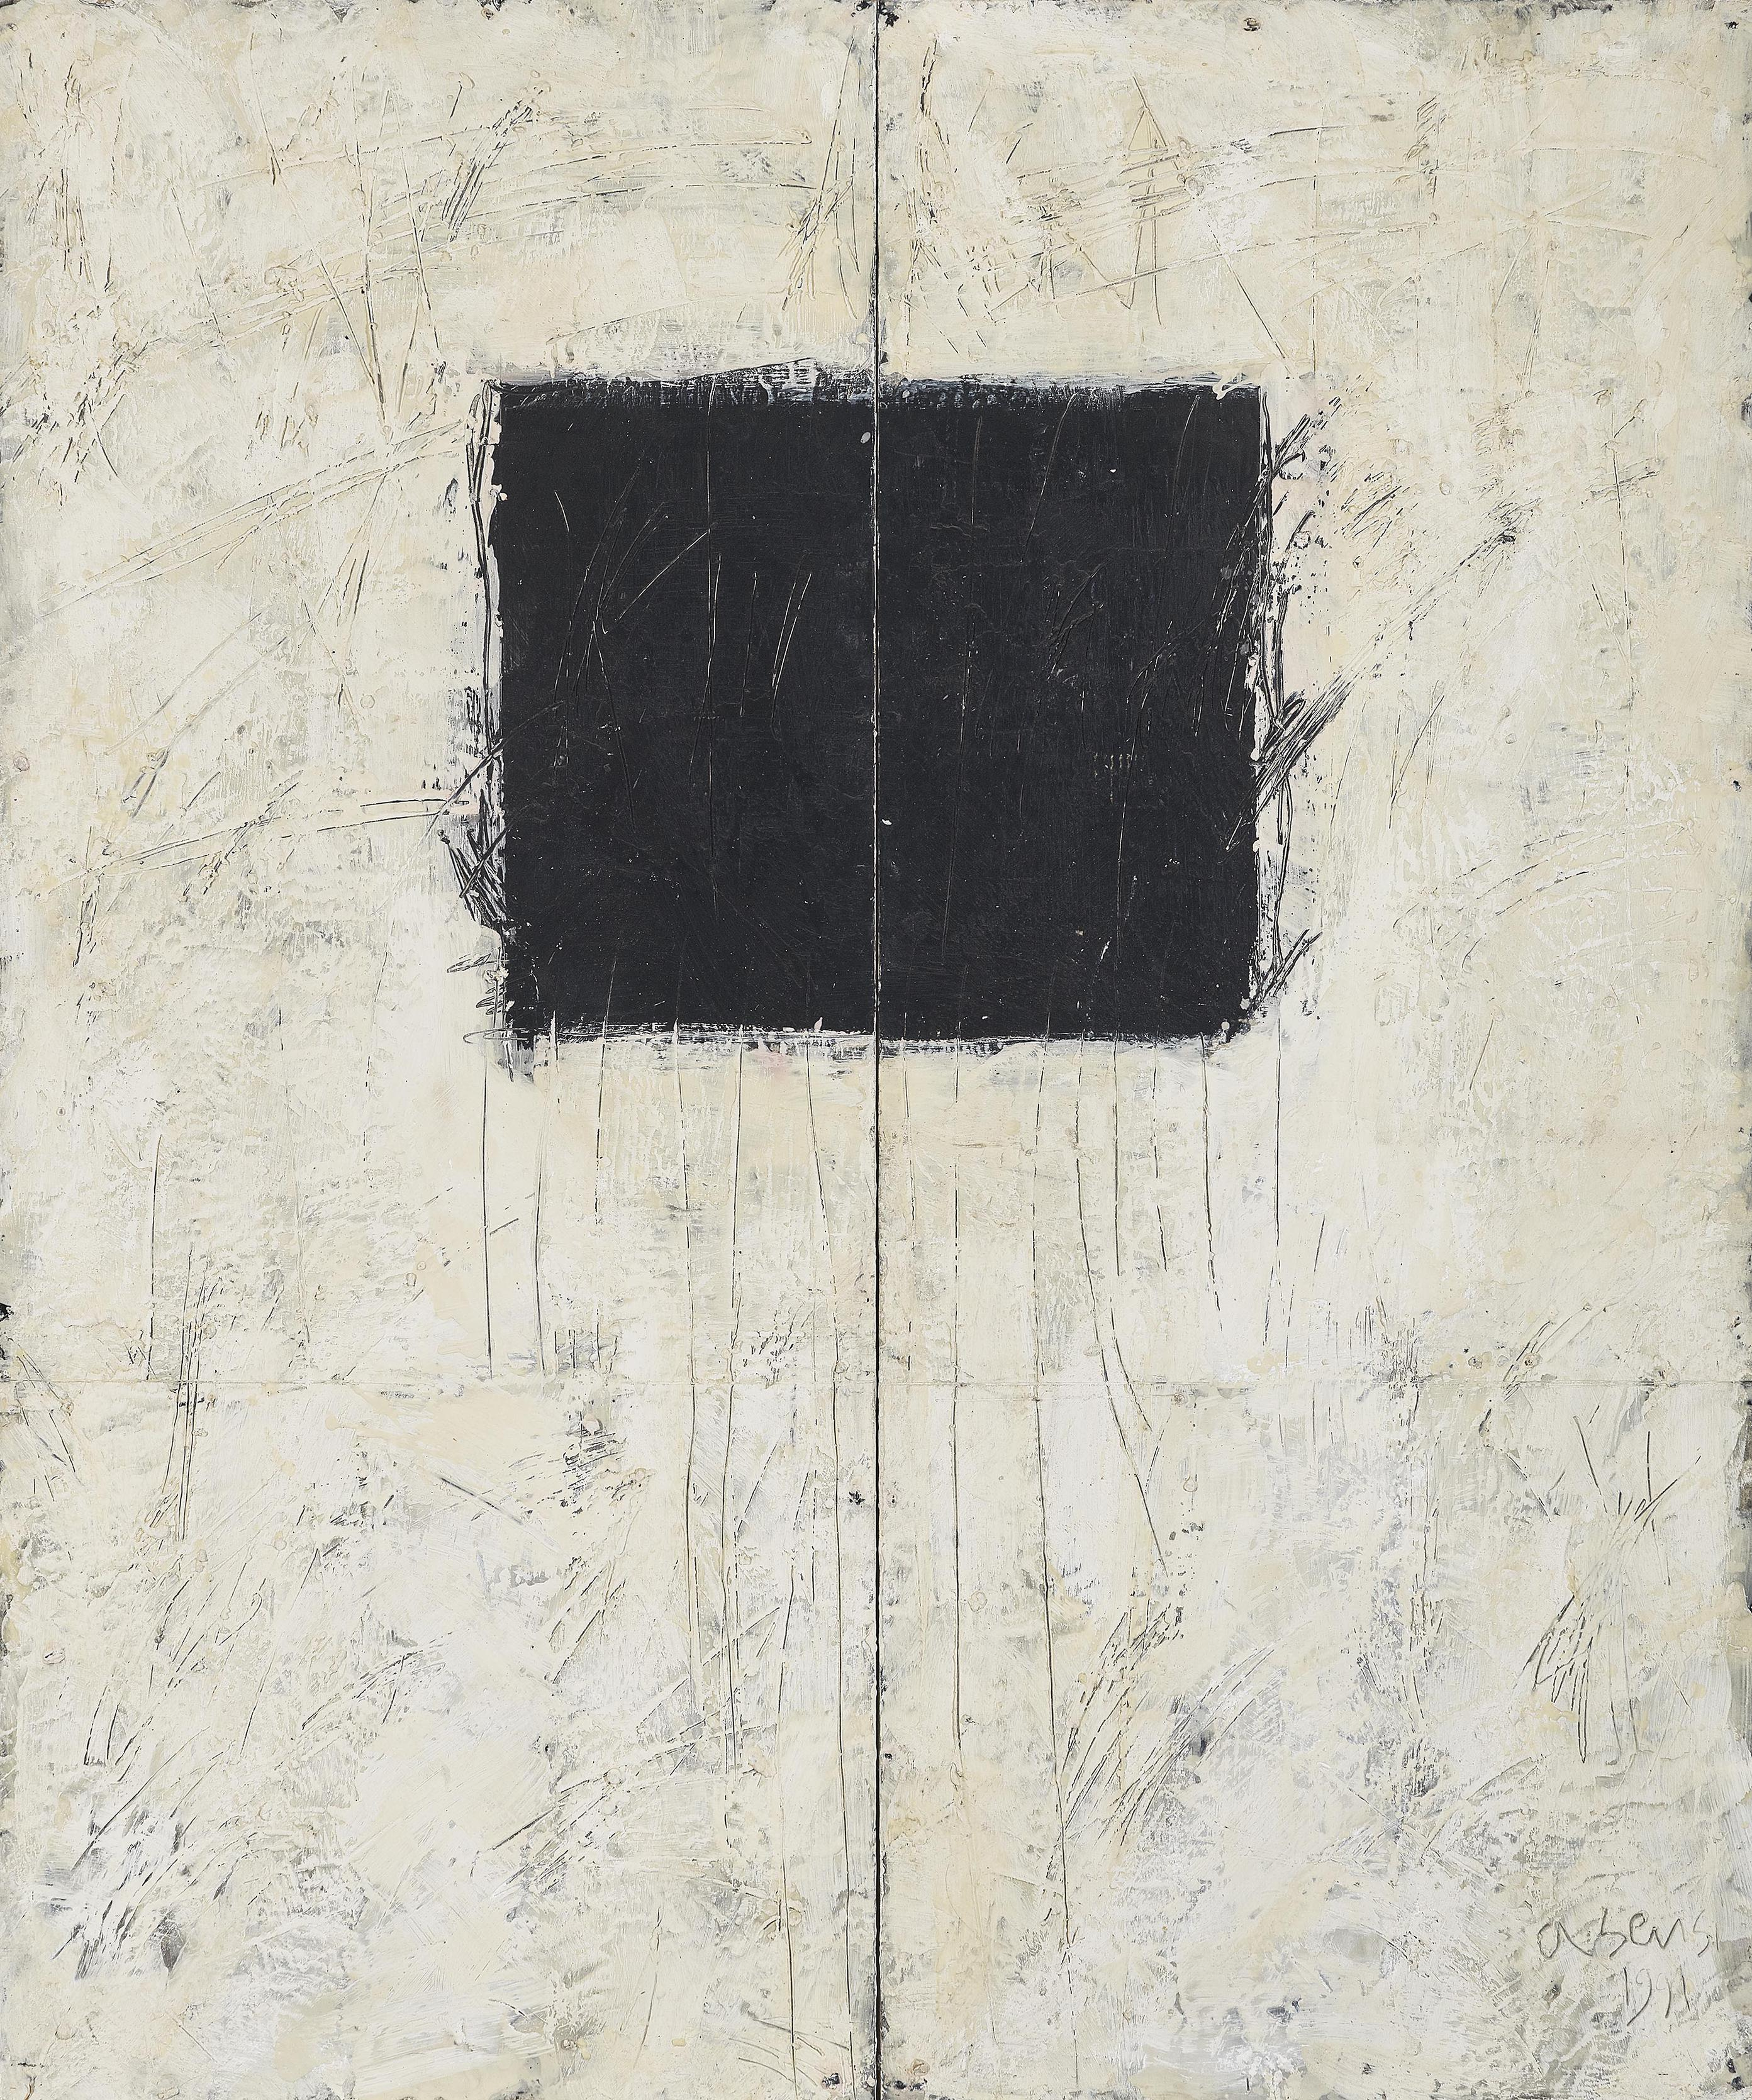 Enrique Asensi - Ohne Titel (Untitled)-1991